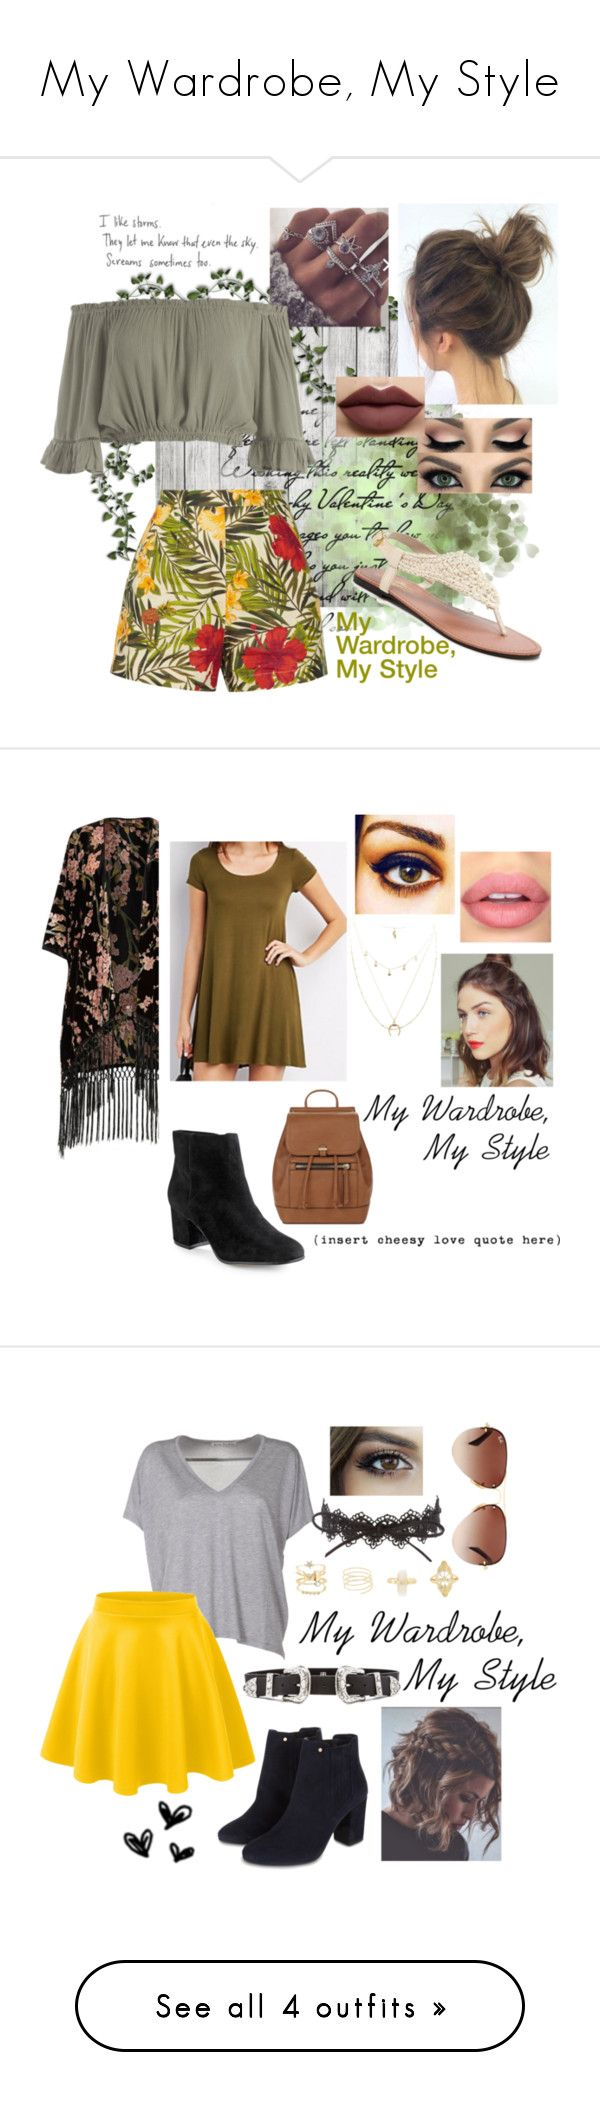 """My Wardrobe, My Style"" by foreverdisneybounding ❤ liked on Polyvore featuring Miguelina, Sans Souci, Charles Albert, Anastasia Beverly Hills, 424 Fifth, River Island, Charlotte Russe, Accessorize, ...Lost and Acne Studios"